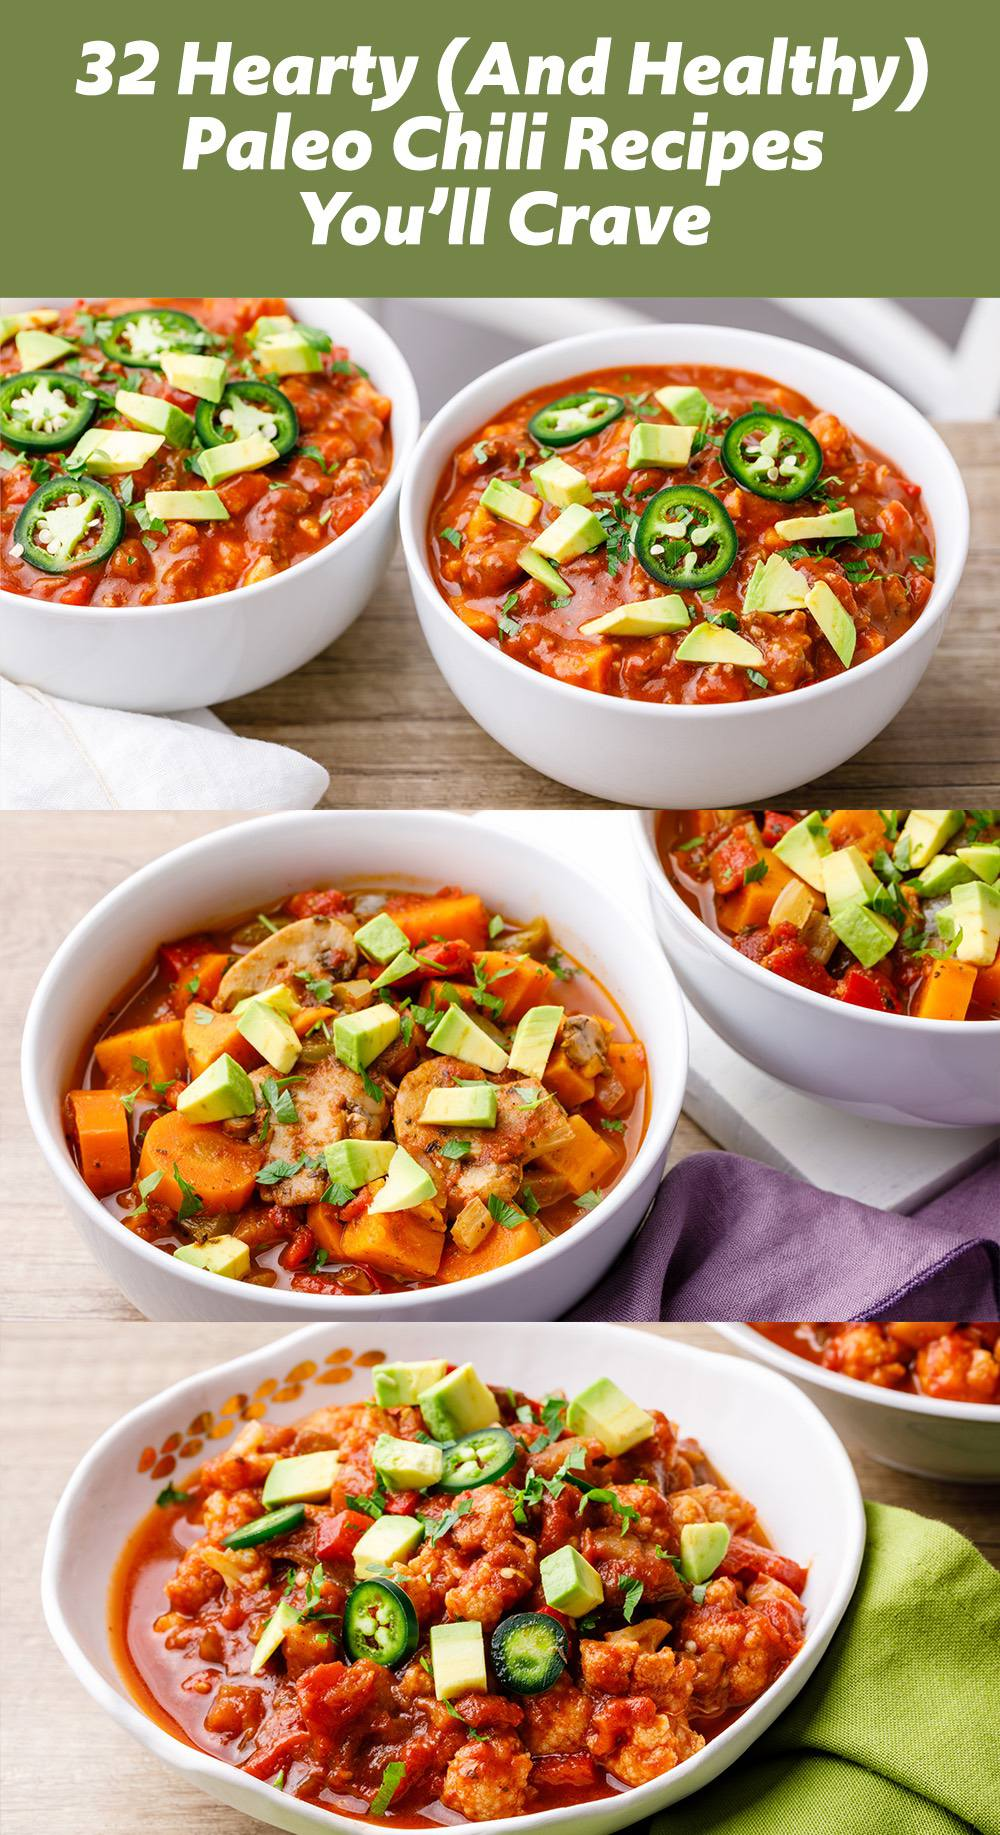 Try these easy, hearty and soul-satisfying paleo chili recipes!